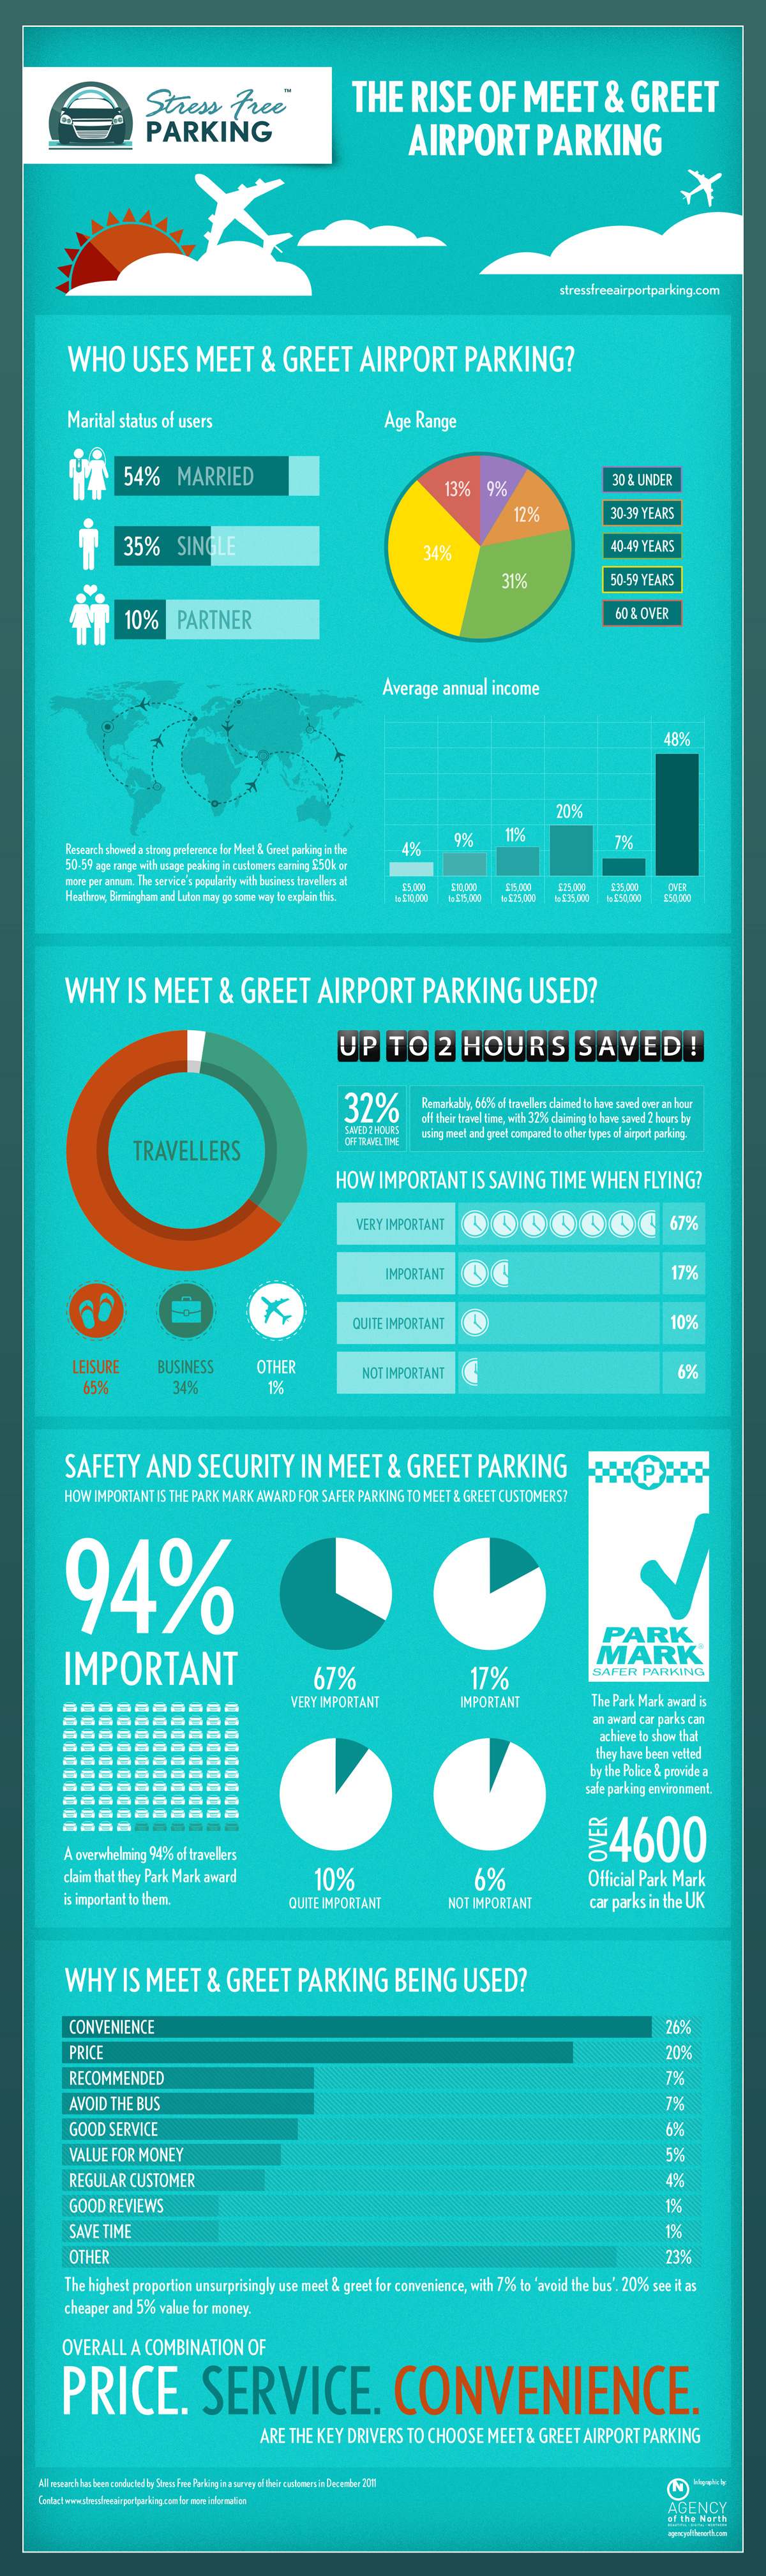 The rise of meet greet airport parking infographic cool the rise of meet greet airport parking infographic kristyandbryce Gallery